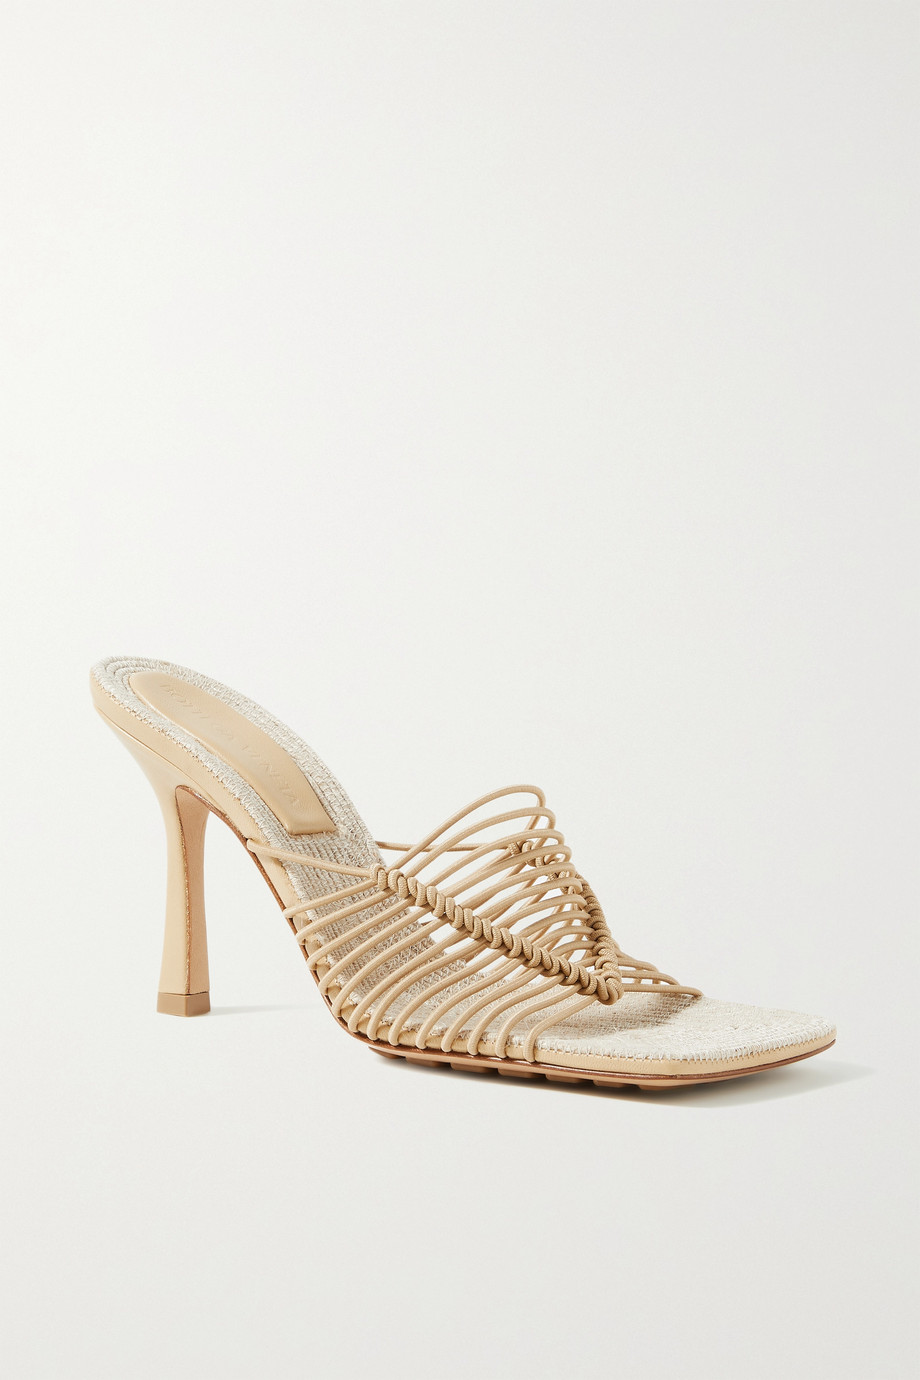 BOTTEGA VENETA Knotted cord and raffia mules